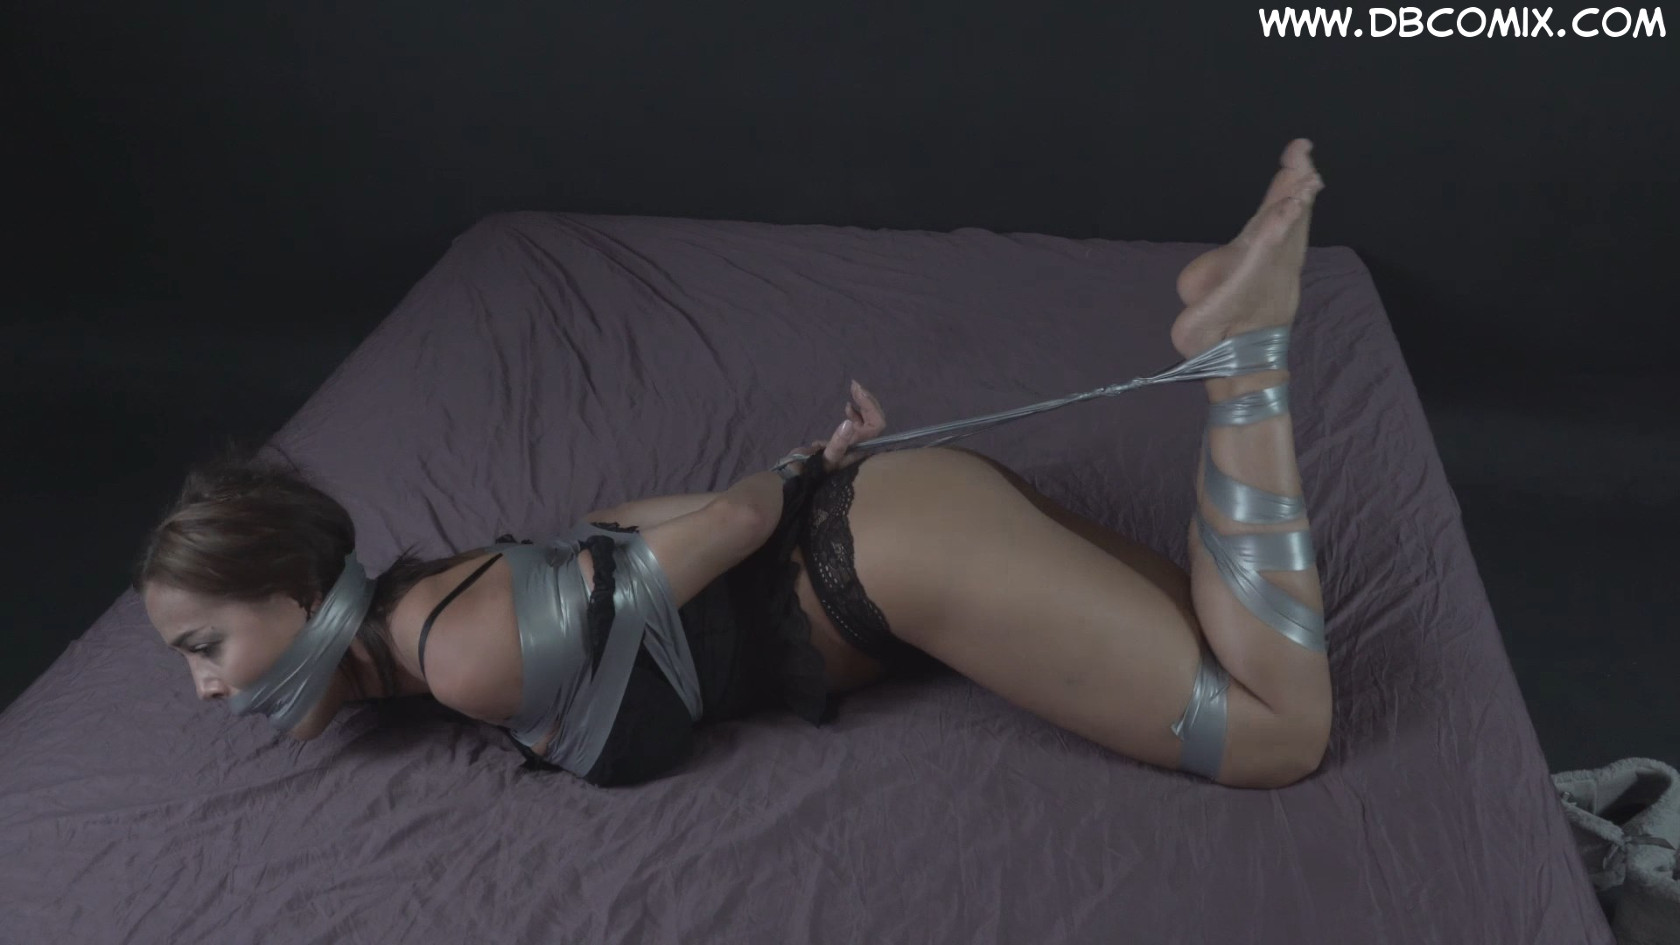 Escape Artist in Bondage